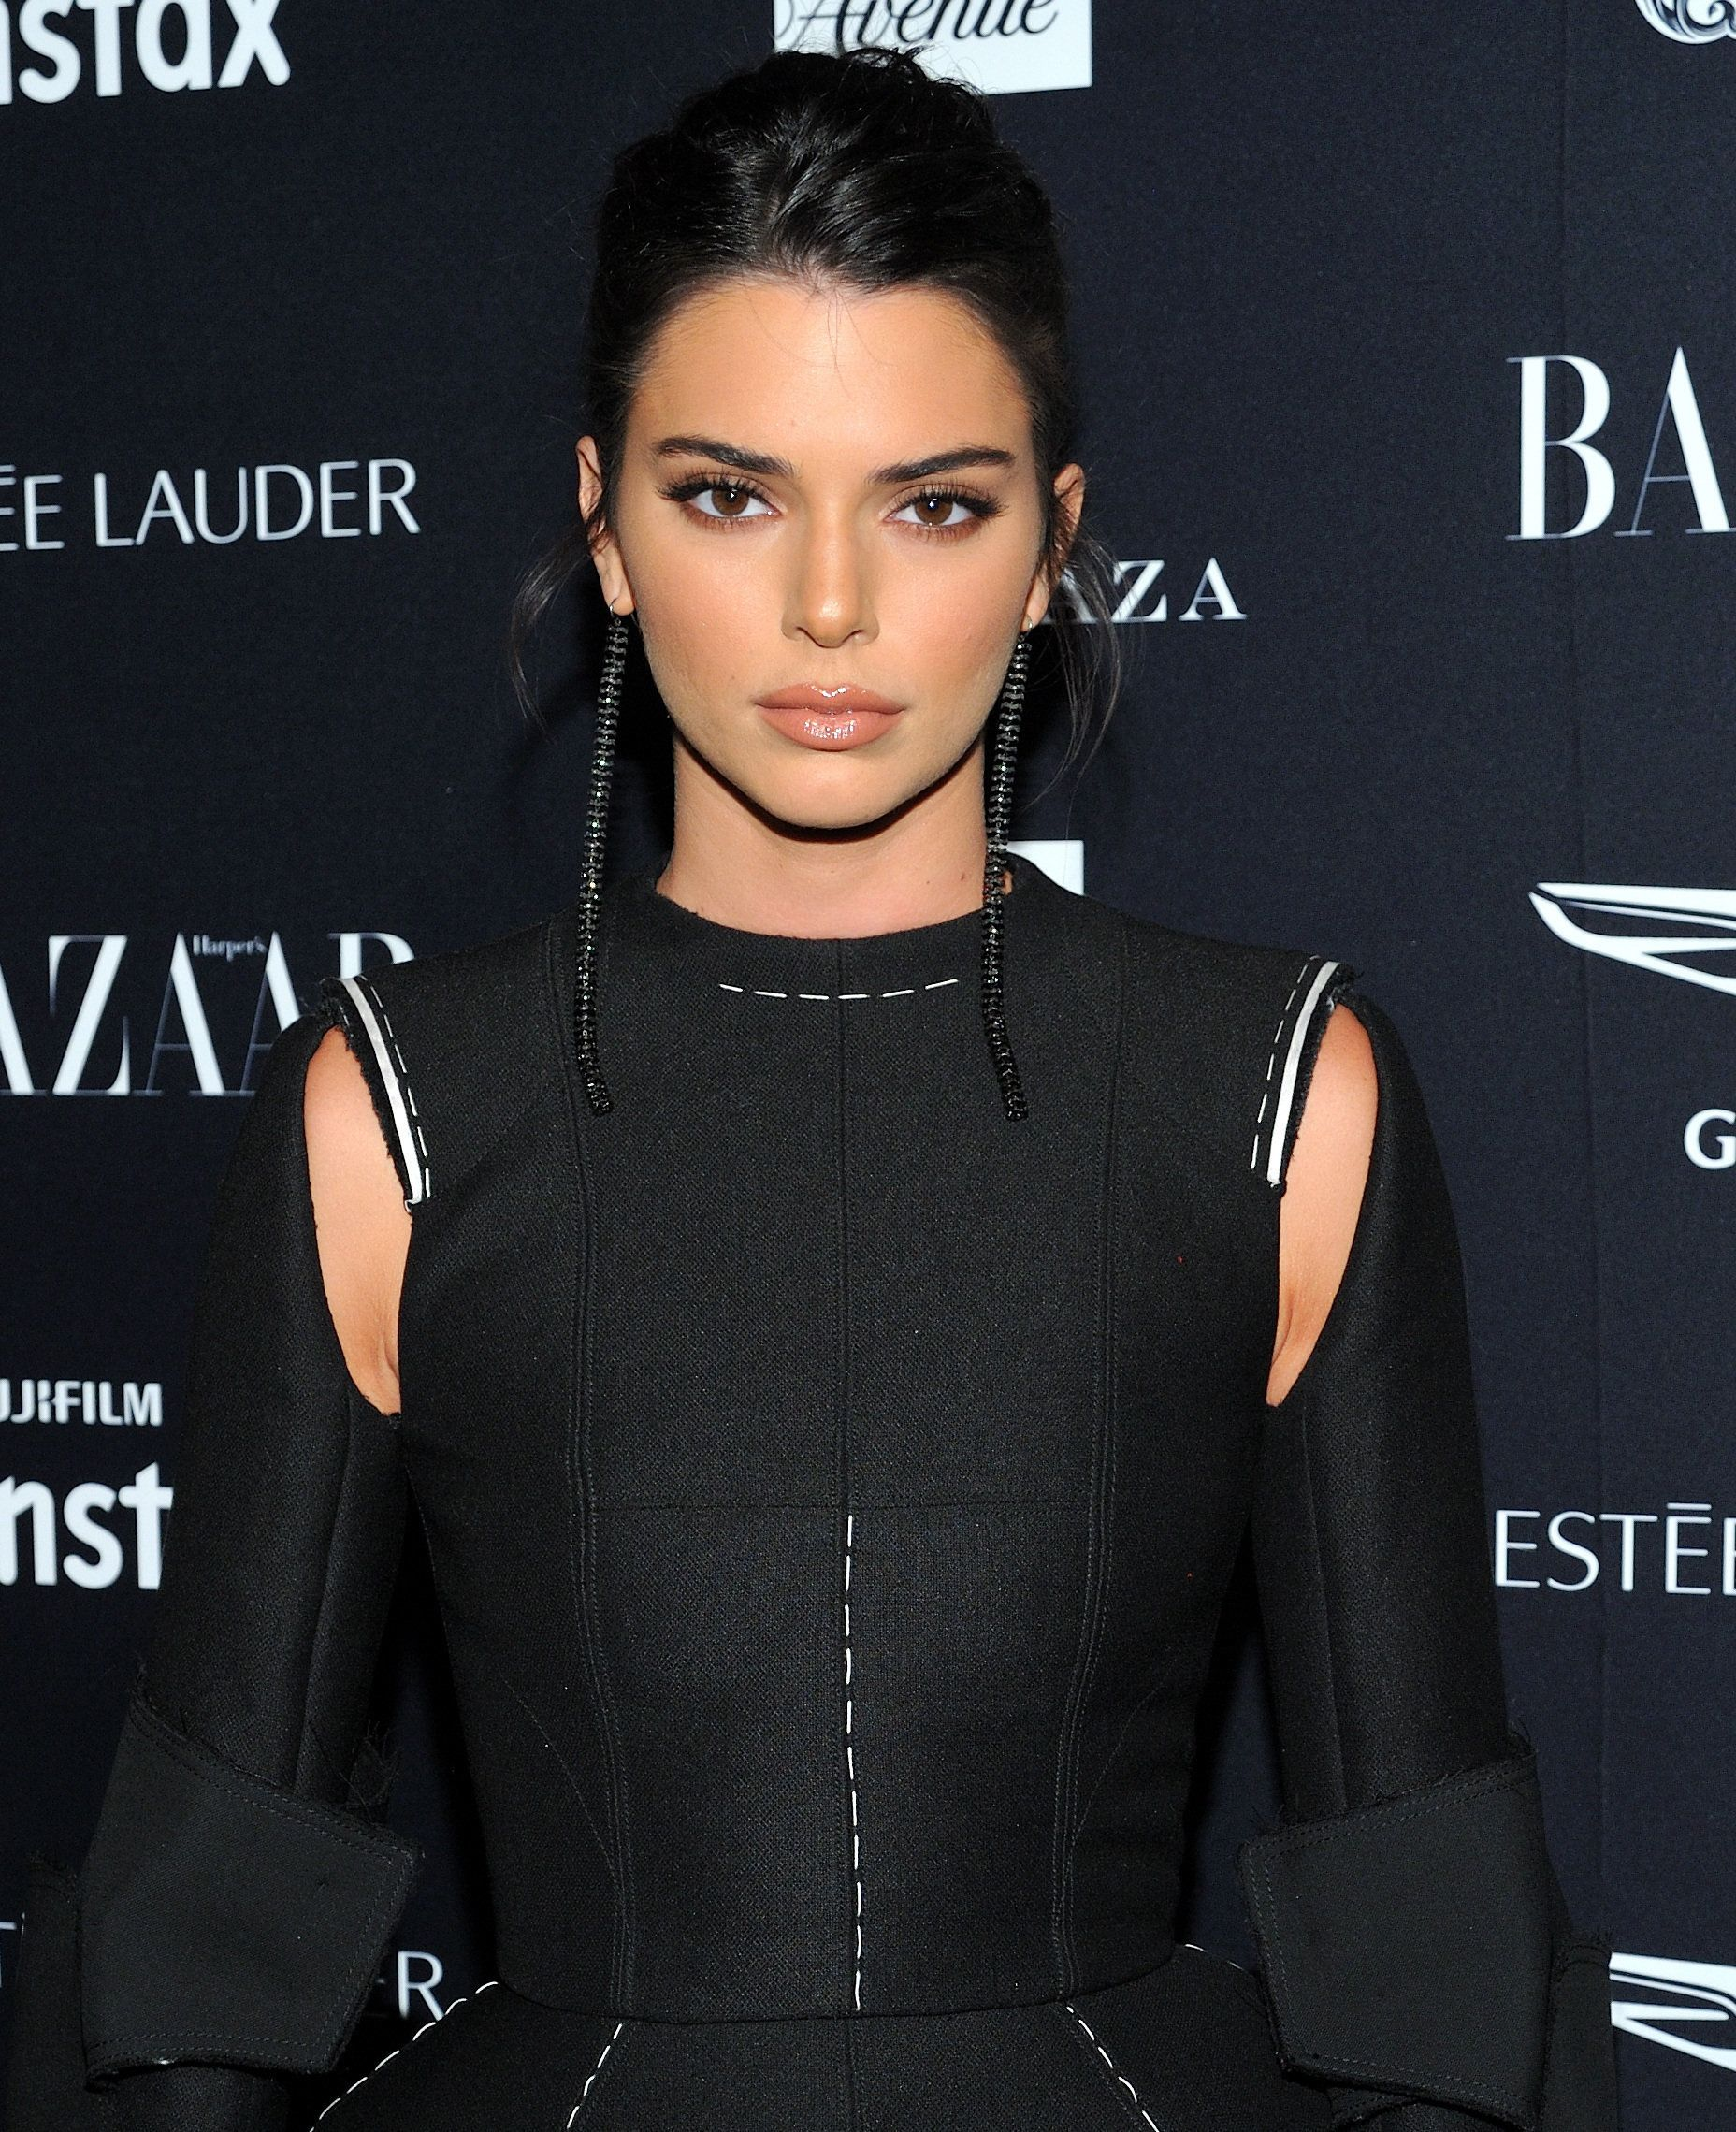 Kendall Jenner attends the Harper's Bazaar Icons by Carine Roitfeld event at The Plaza Hotel in New York, NY on September 7, 2018. (Photo by Stephen Smith/SIPA USA)